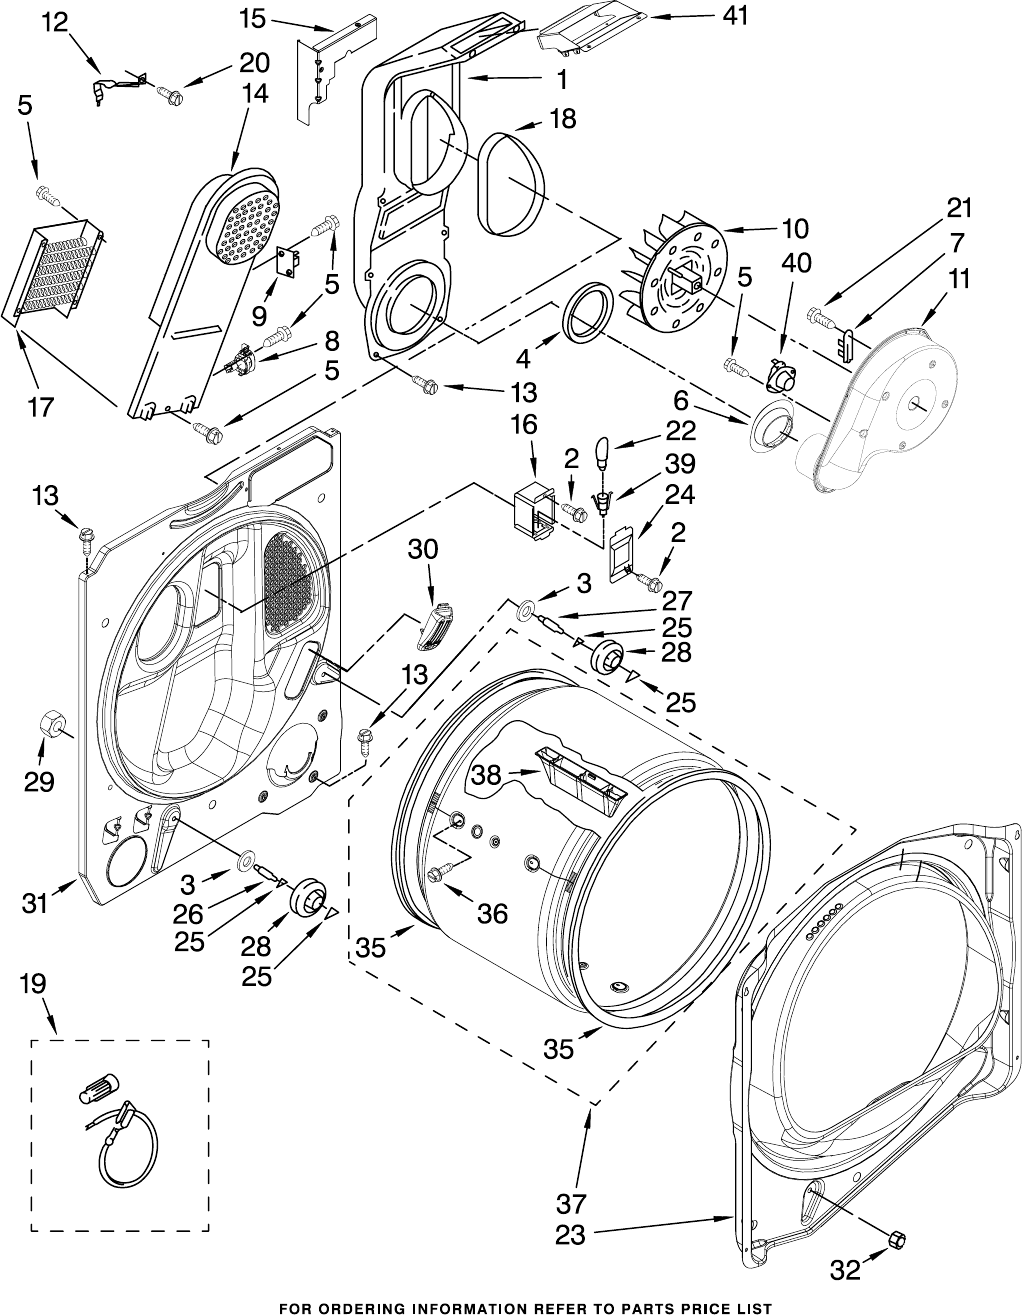 Page 5 of Whirlpool Clothes Dryer WED6200SW1 User Guide